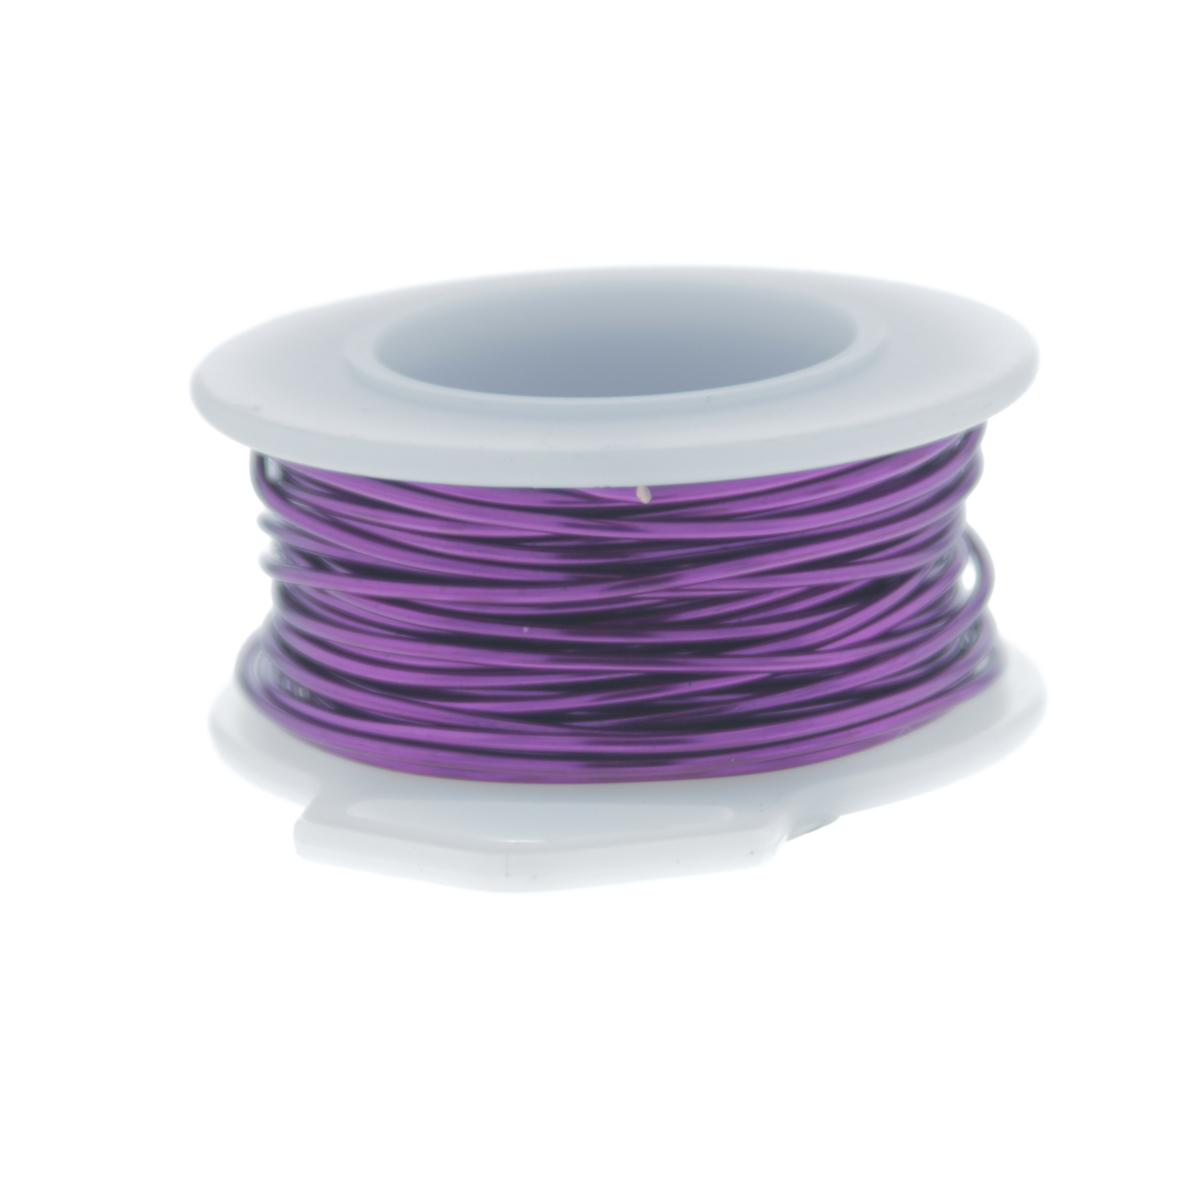 22 Gauge Round Silver Plated Amethyst Copper Craft Wire - 24 ft